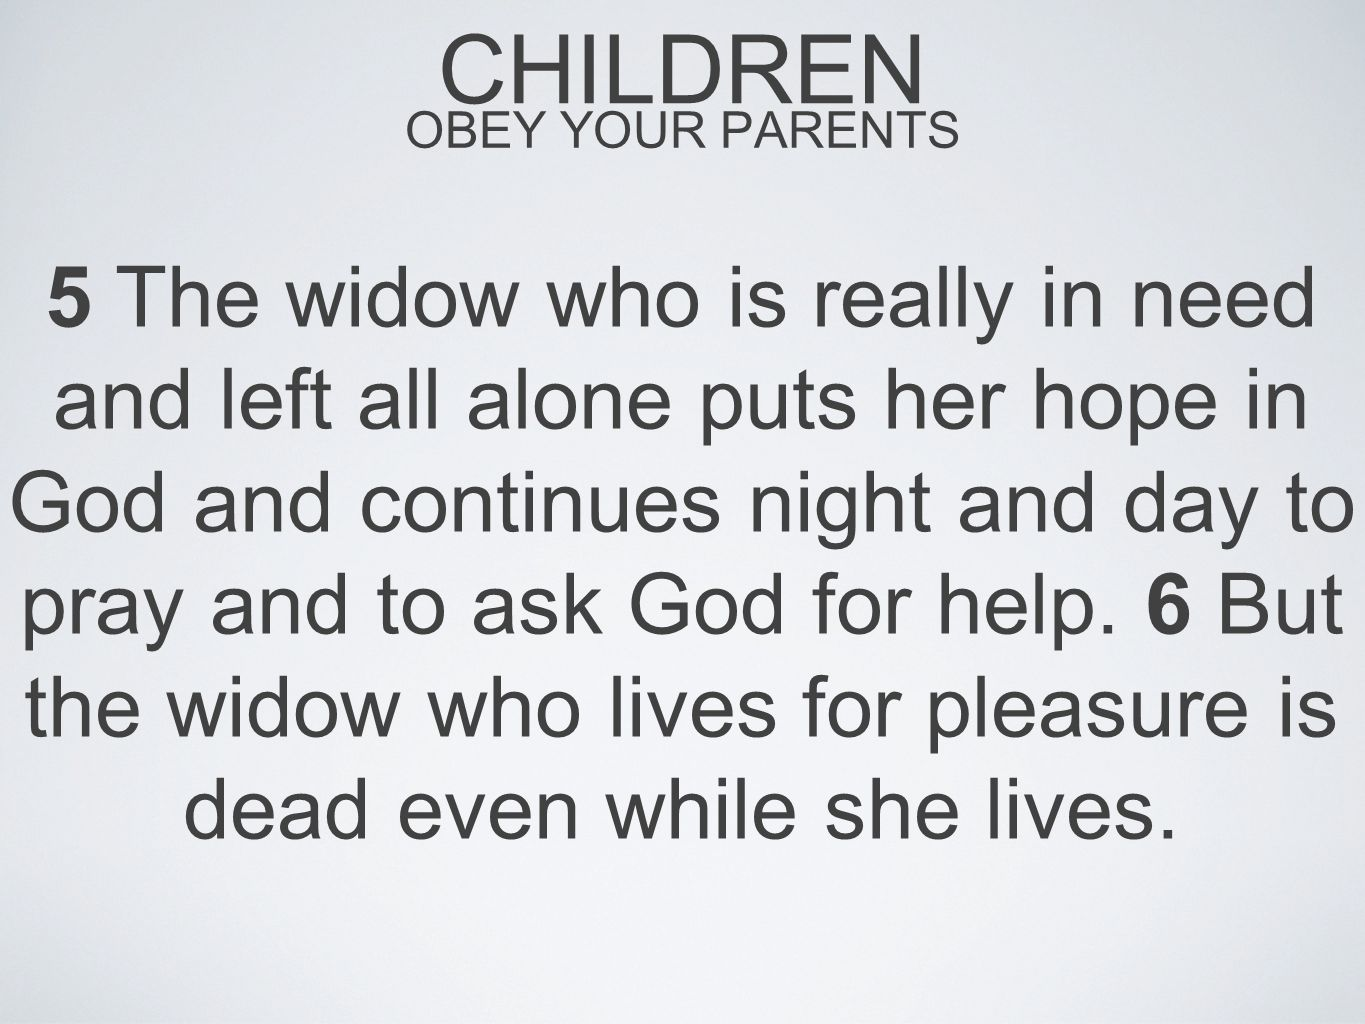 CHILDREN OBEY YOUR PARENTS 5 The widow who is really in need and left all alone puts her hope in God and continues night and day to pray and to ask God for help.